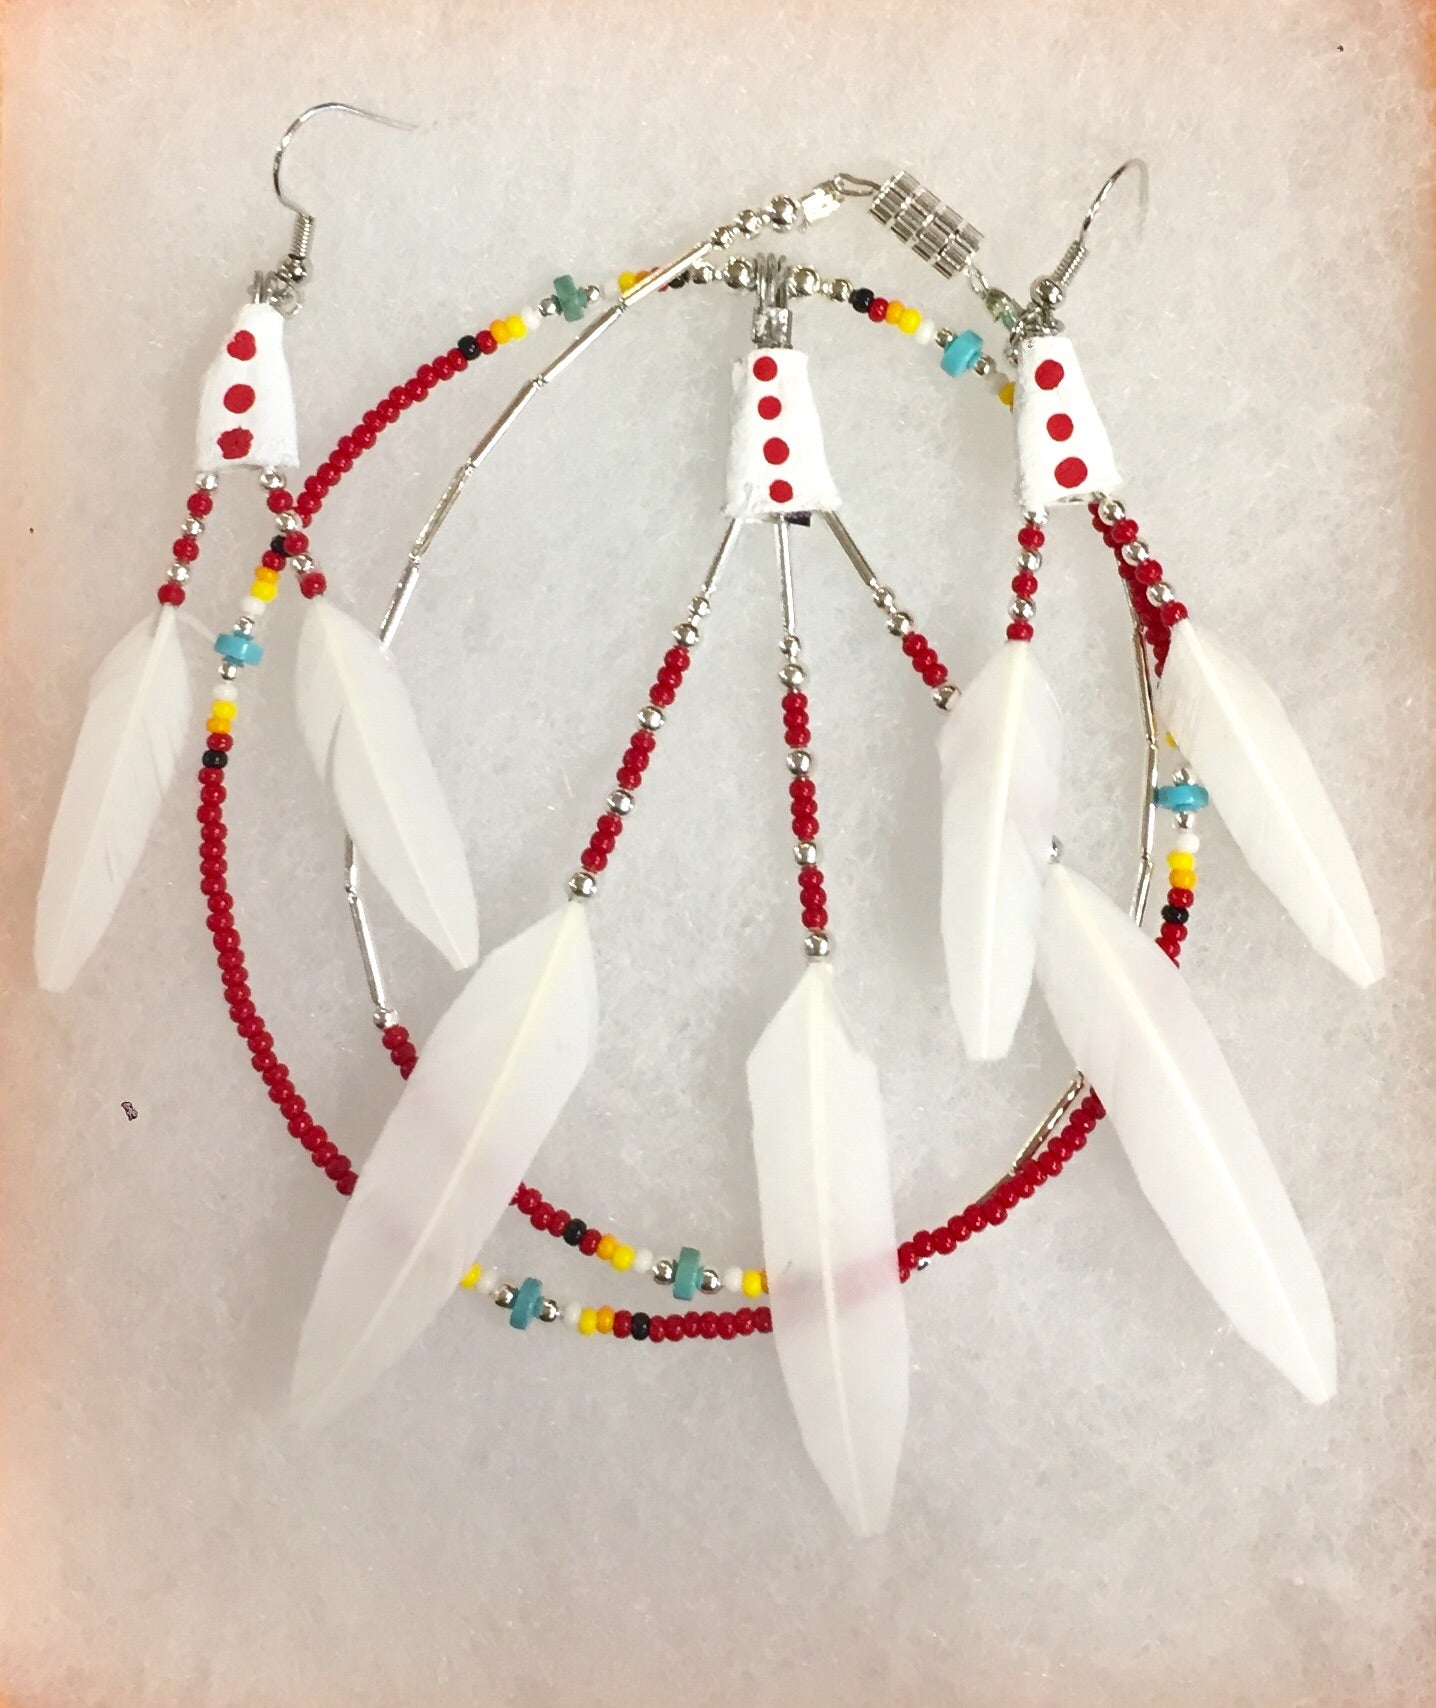 True Navajo Hand Made White Duck Feathers Beaded Necklace and Earrings Sets